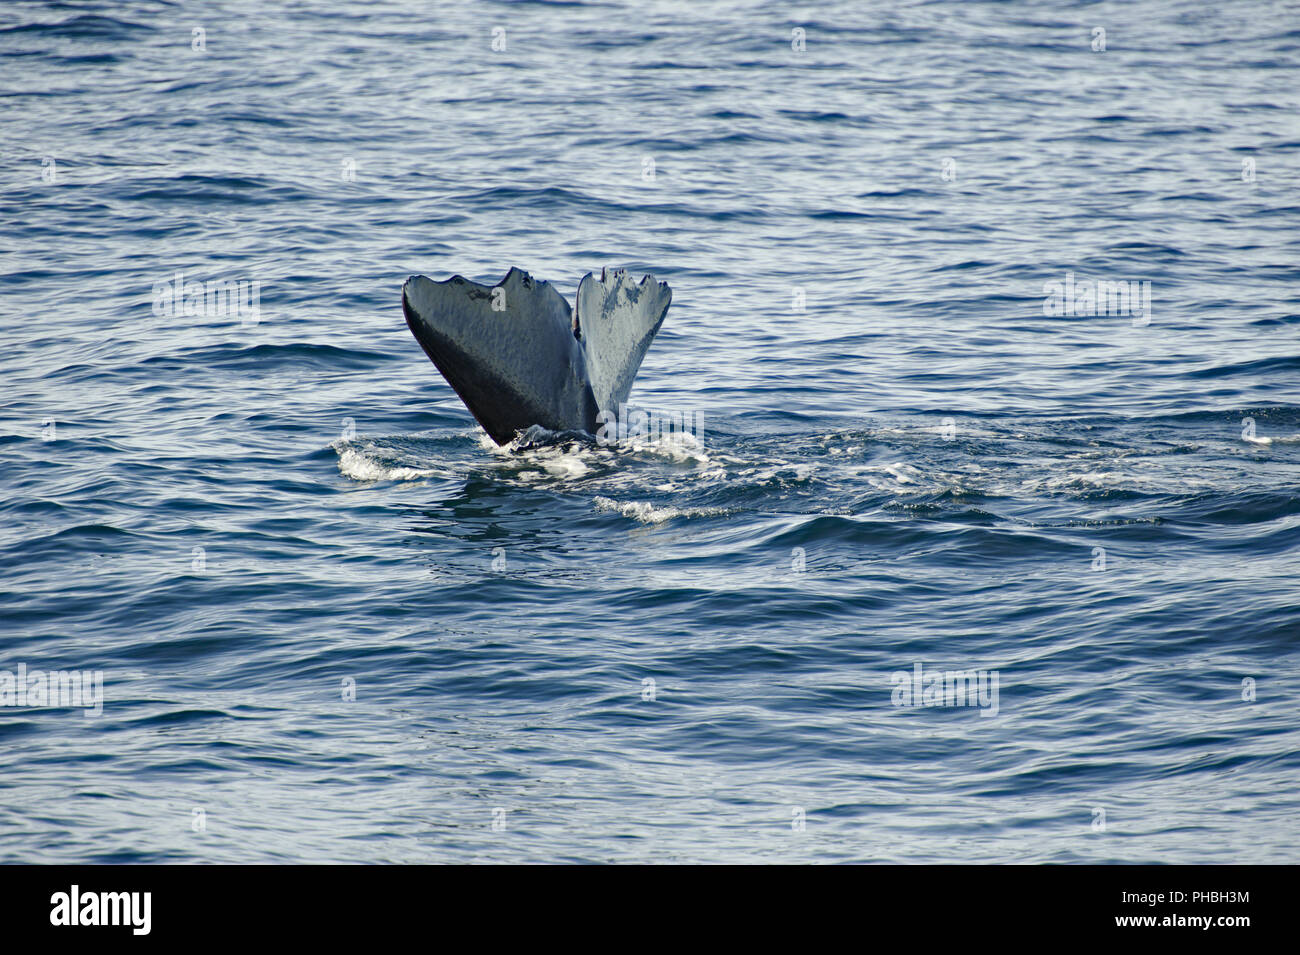 Spermwhale diving - Stock Image